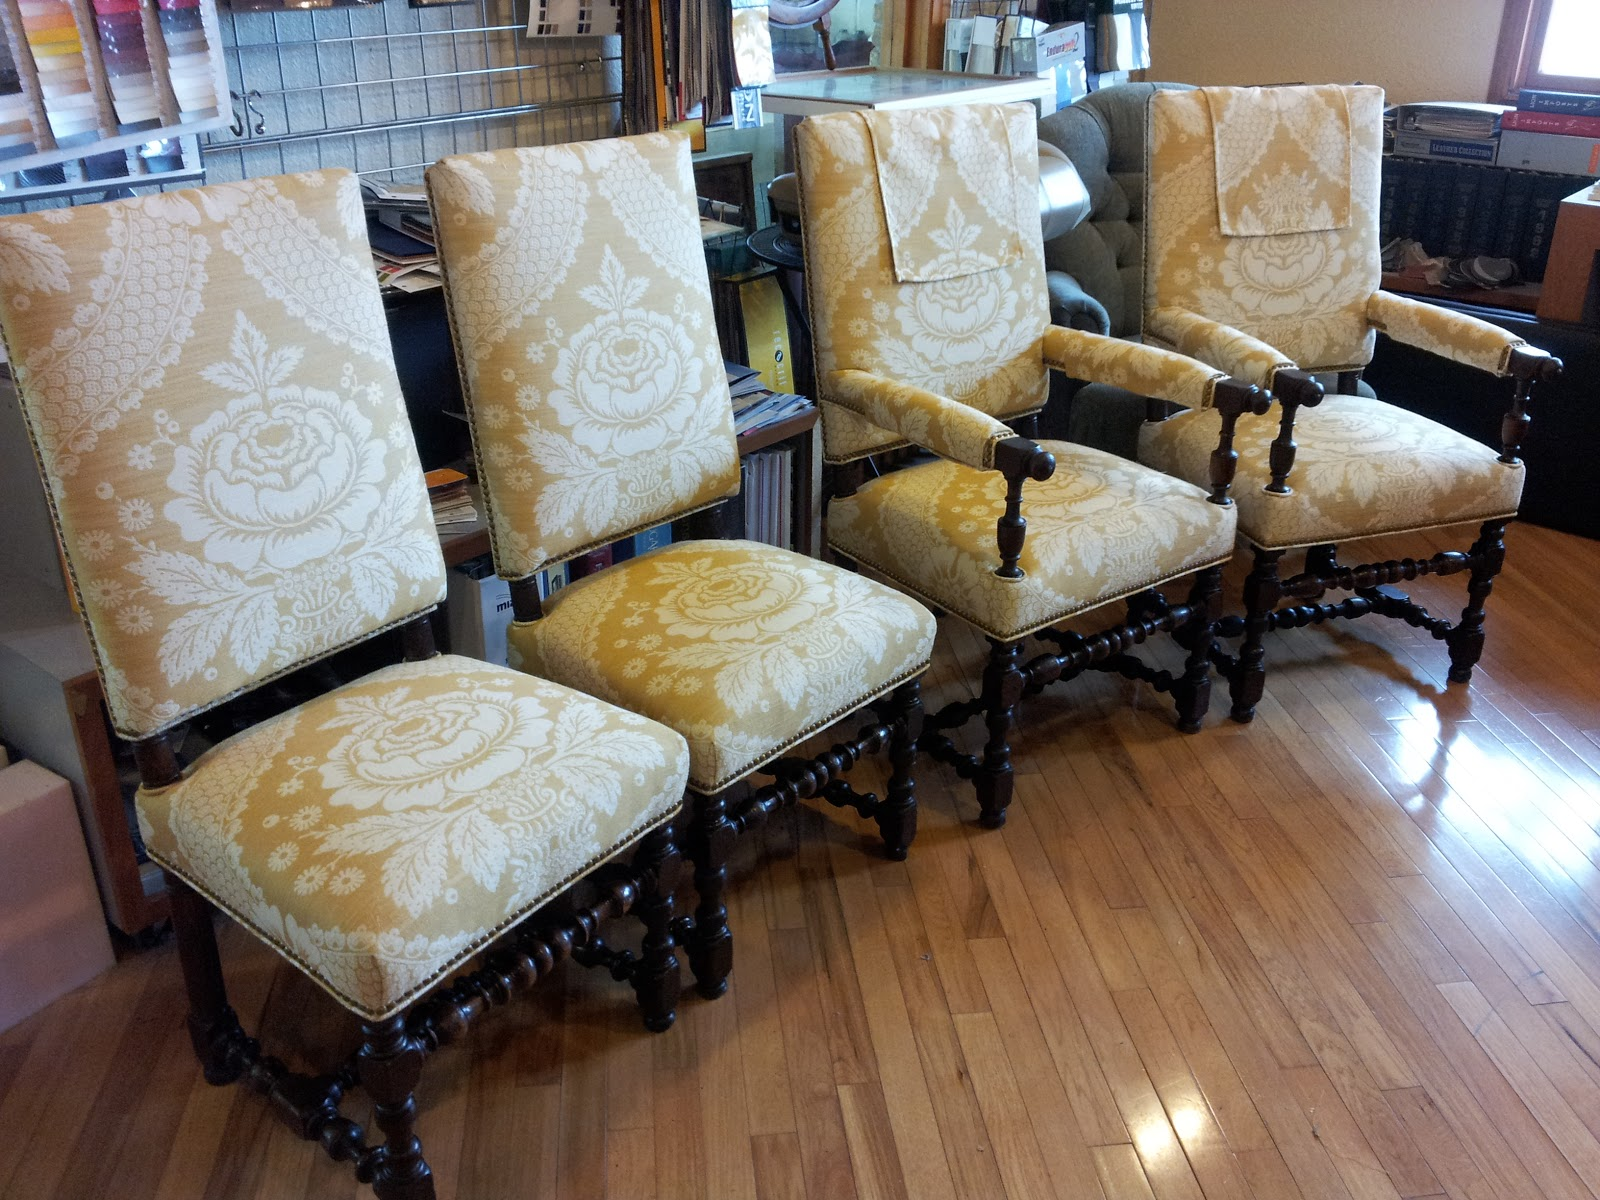 Church Chairs Wholesale Church Chairs For Sale. Boss Chairs Boss Chairs.  Extendable Round